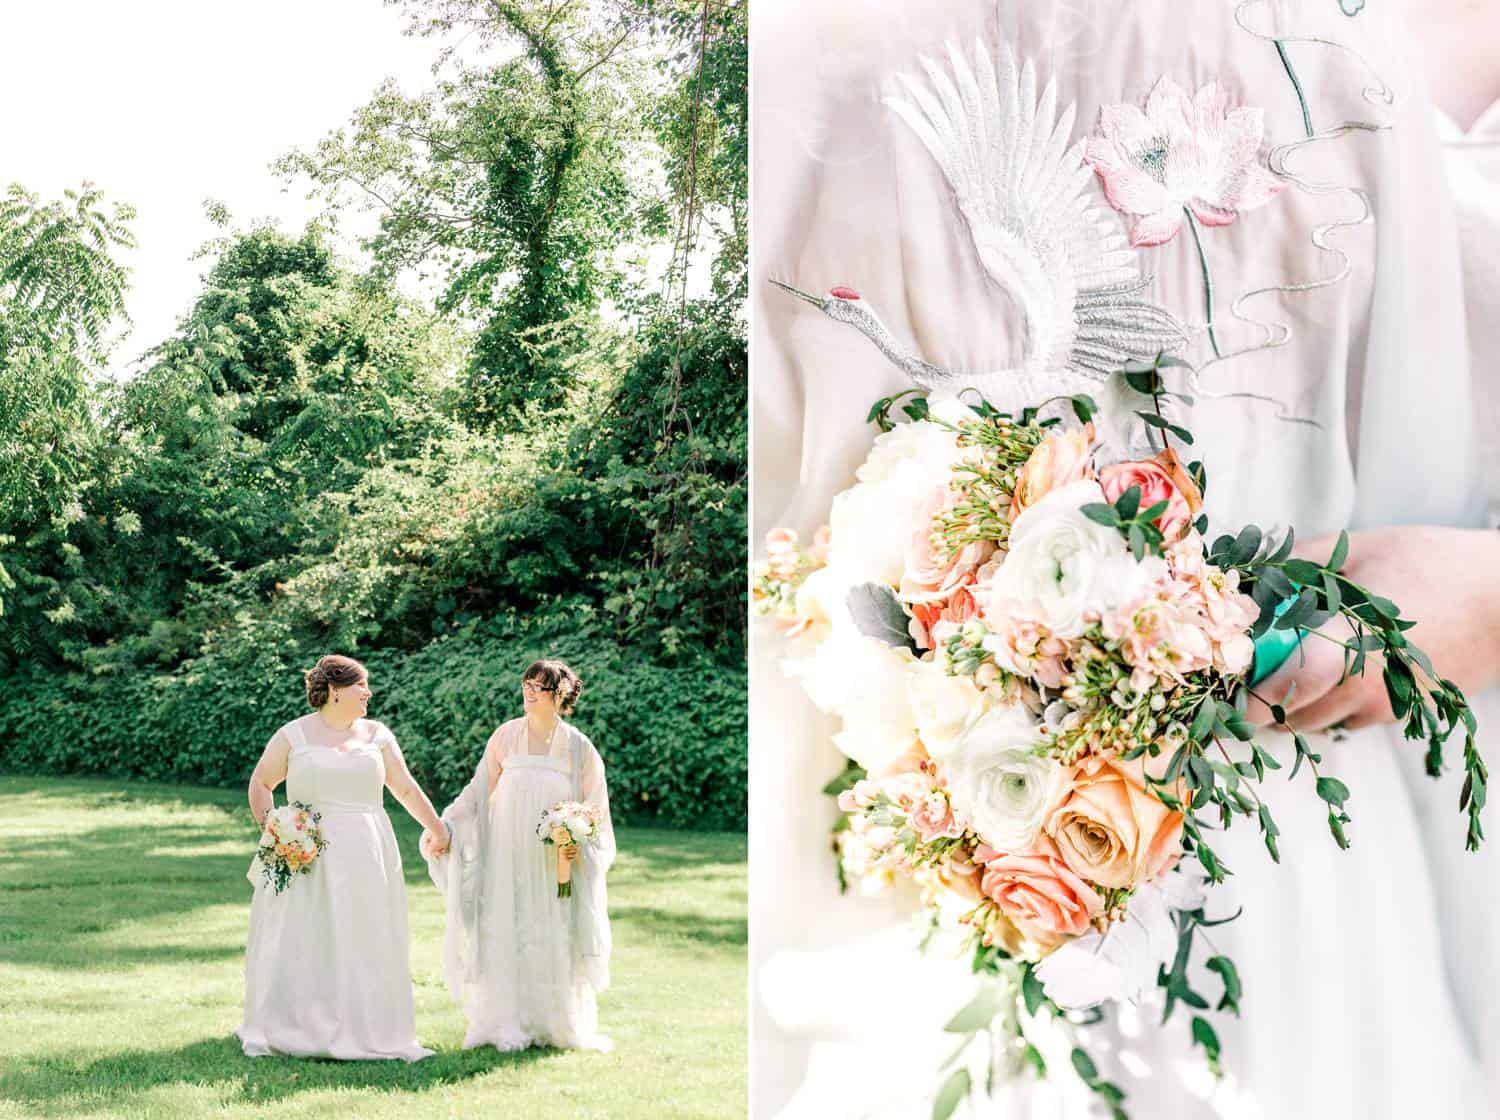 Two brides walk hand-in-hand across a shady lawn. In a second photo, a close-up of one bride's bouquet is depicted.